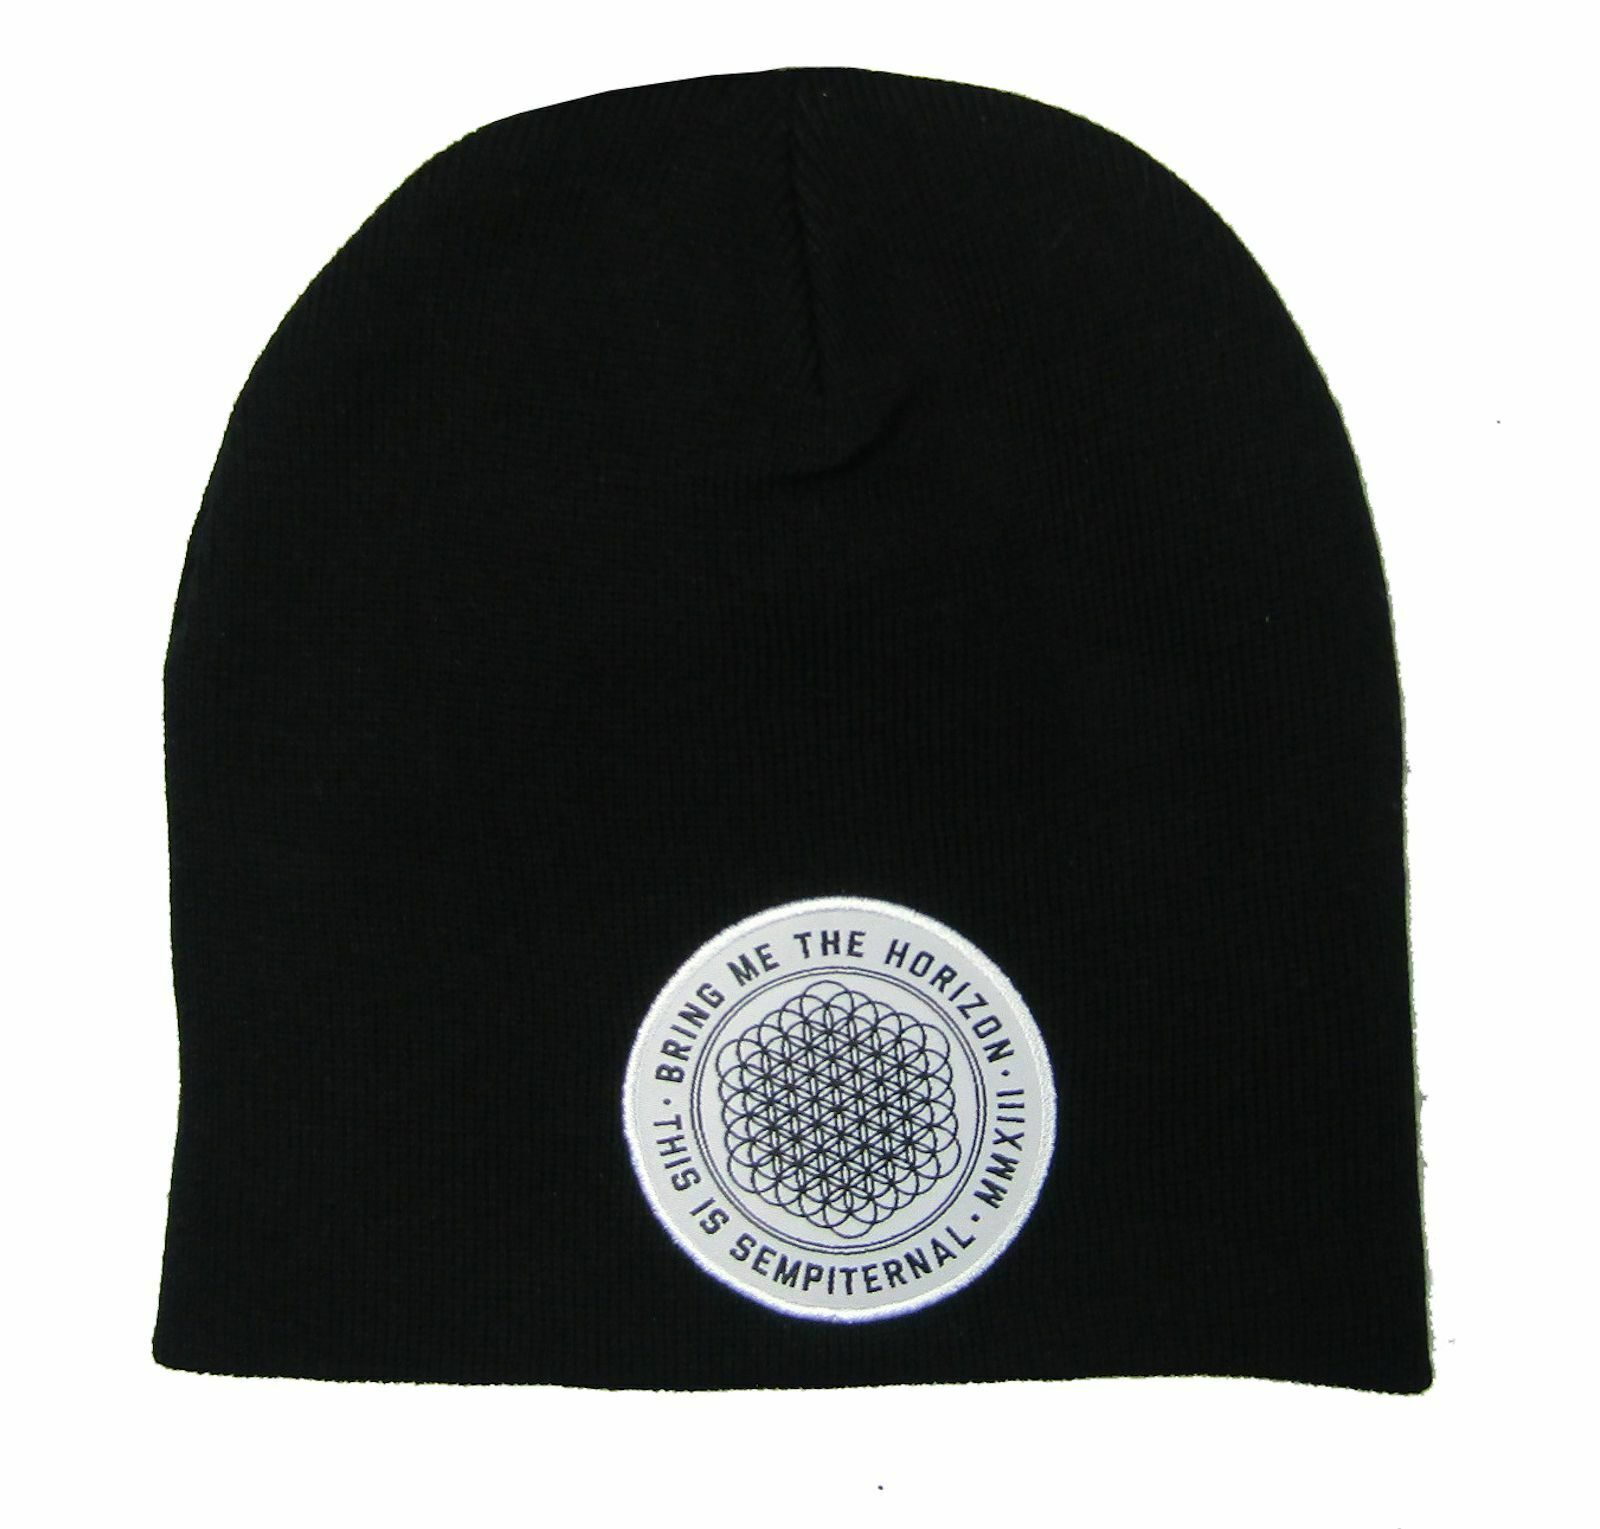 Bring Me the Horizon Sempiternal Black Beanie Hat NEW and OFFICIAL